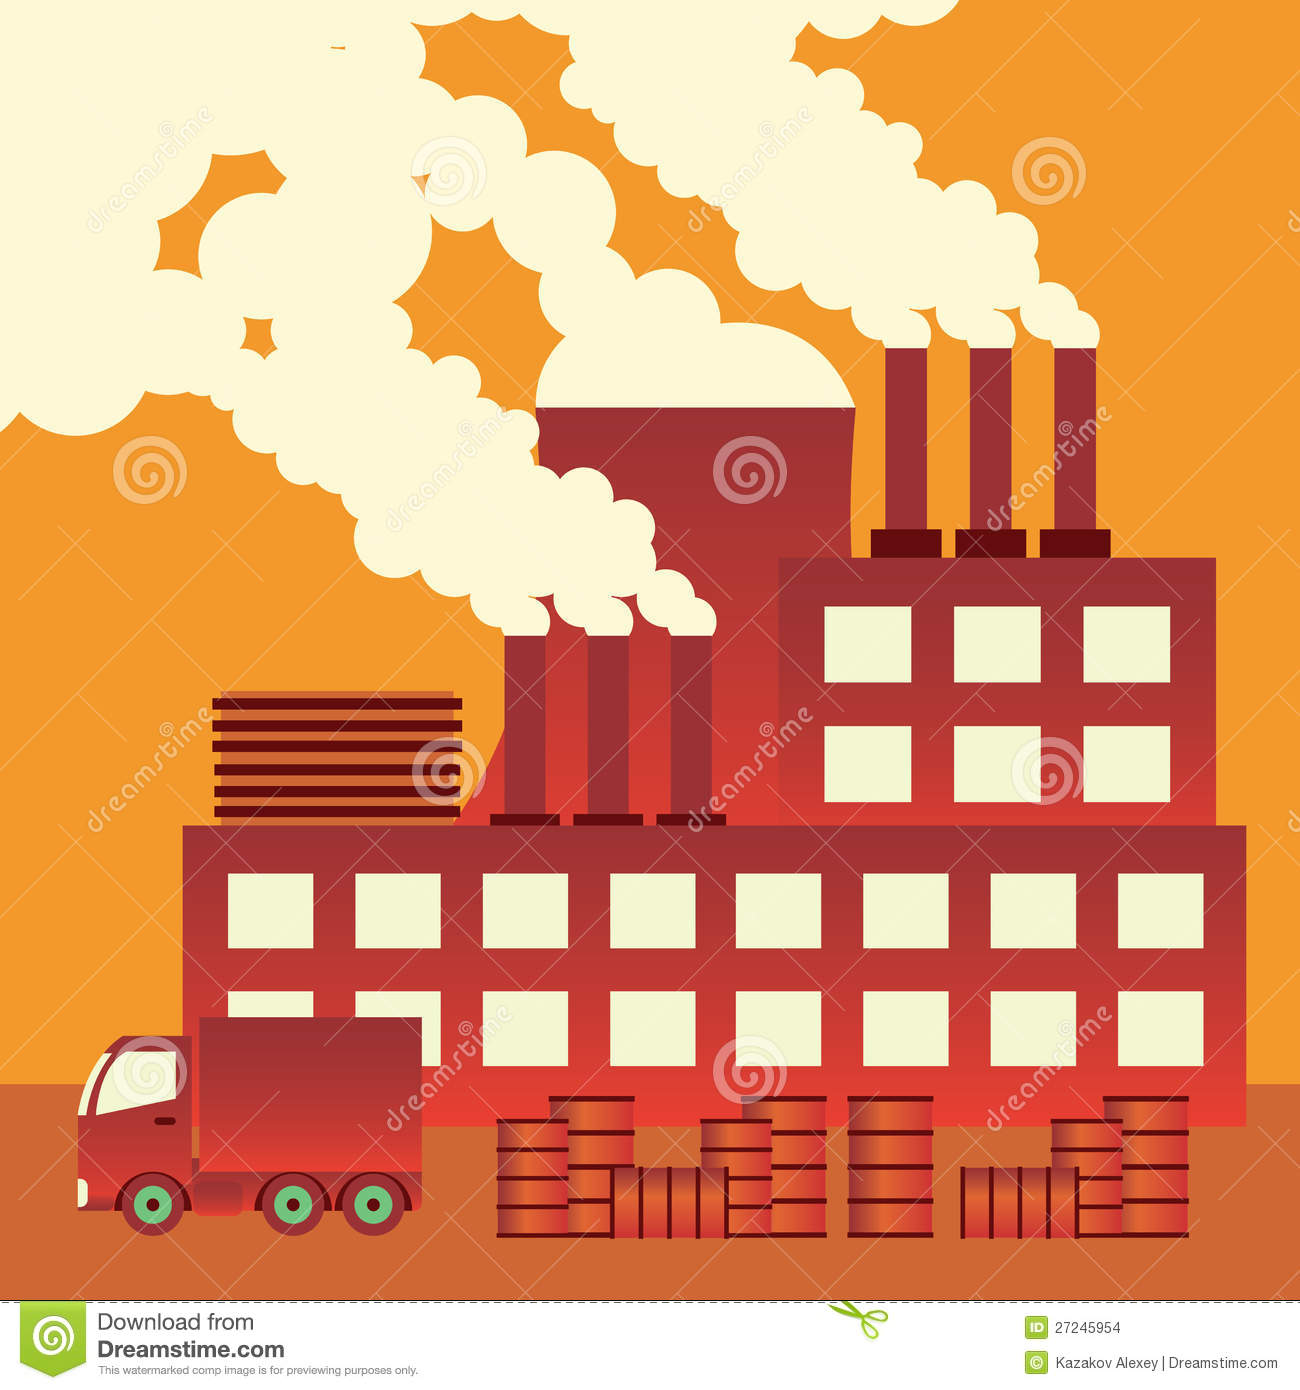 industrial pollution clipart - photo #34